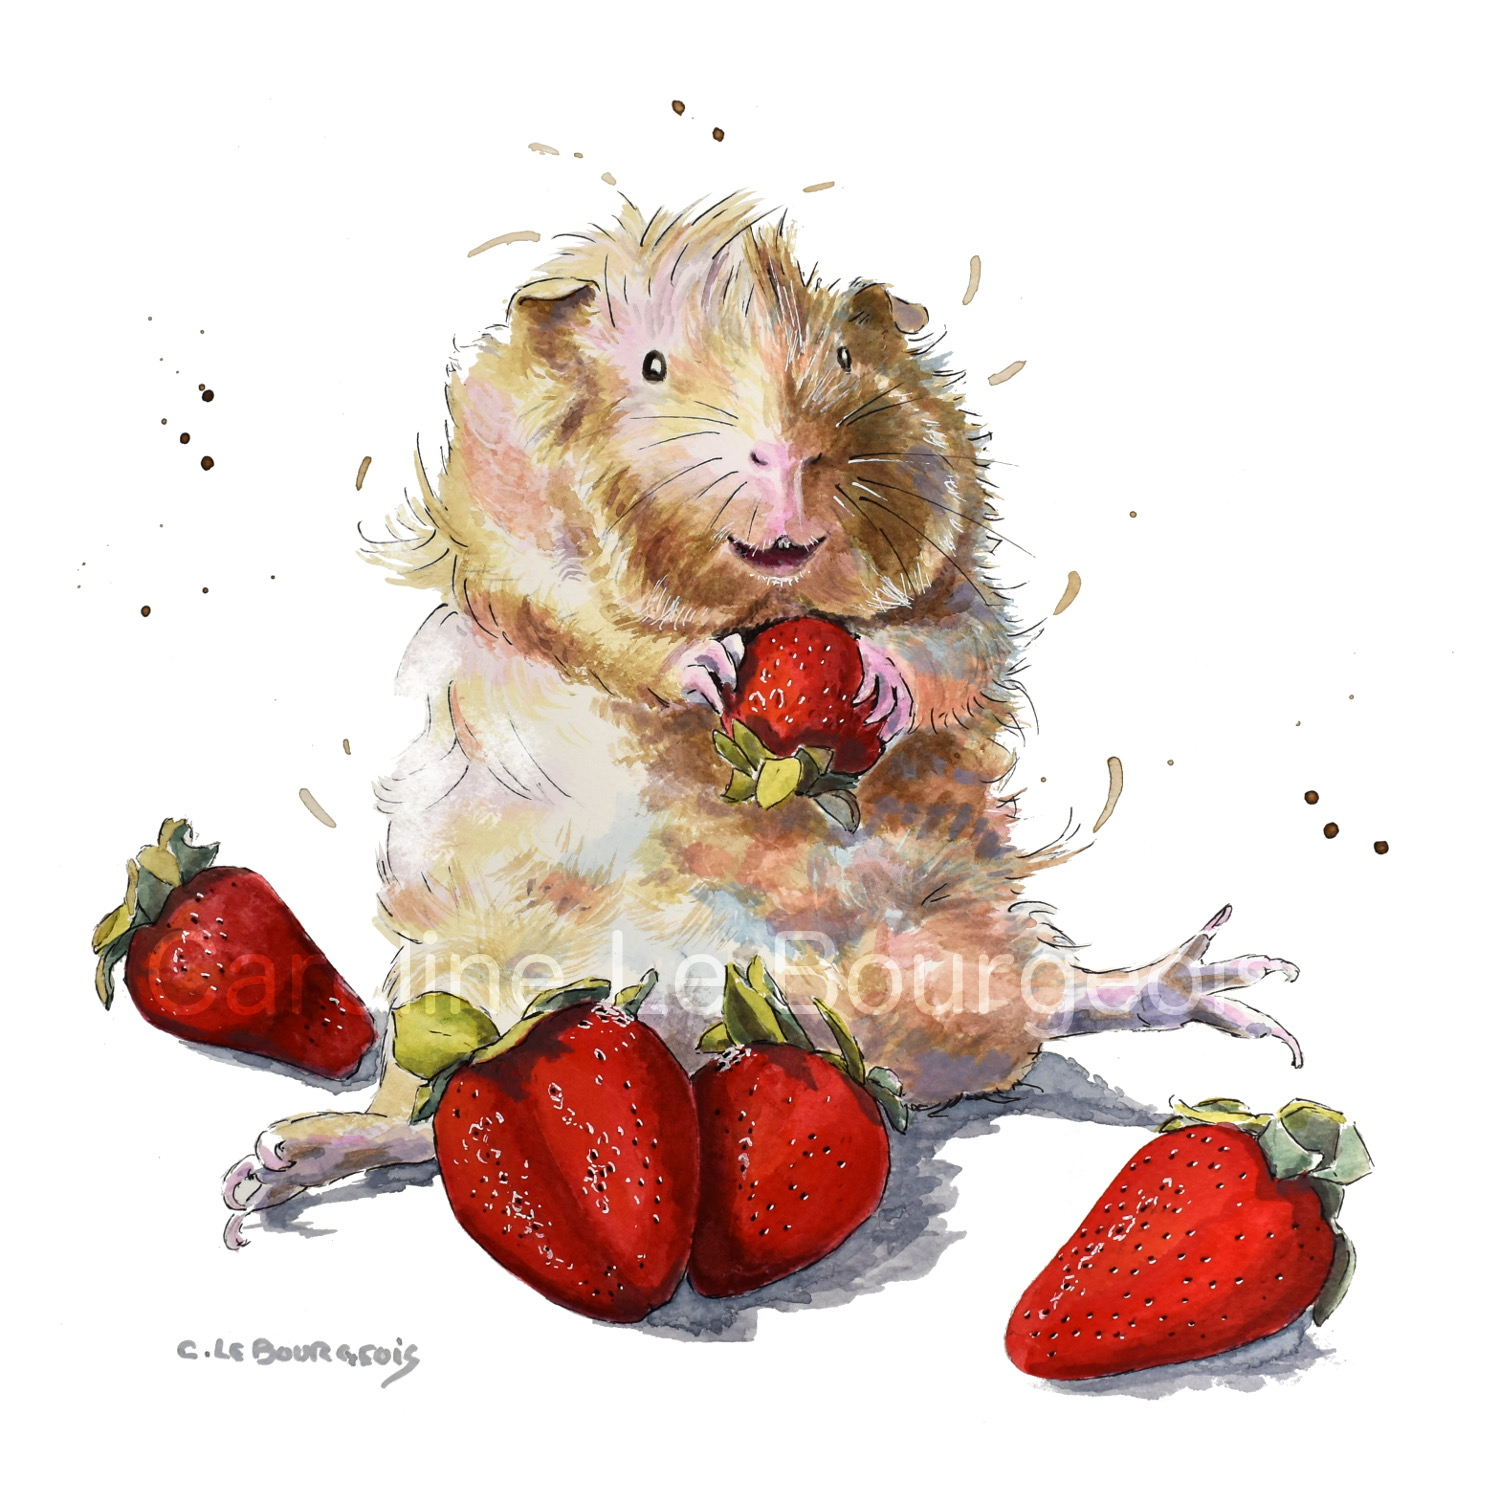 Butterscotch the Guinea pig and strawberries